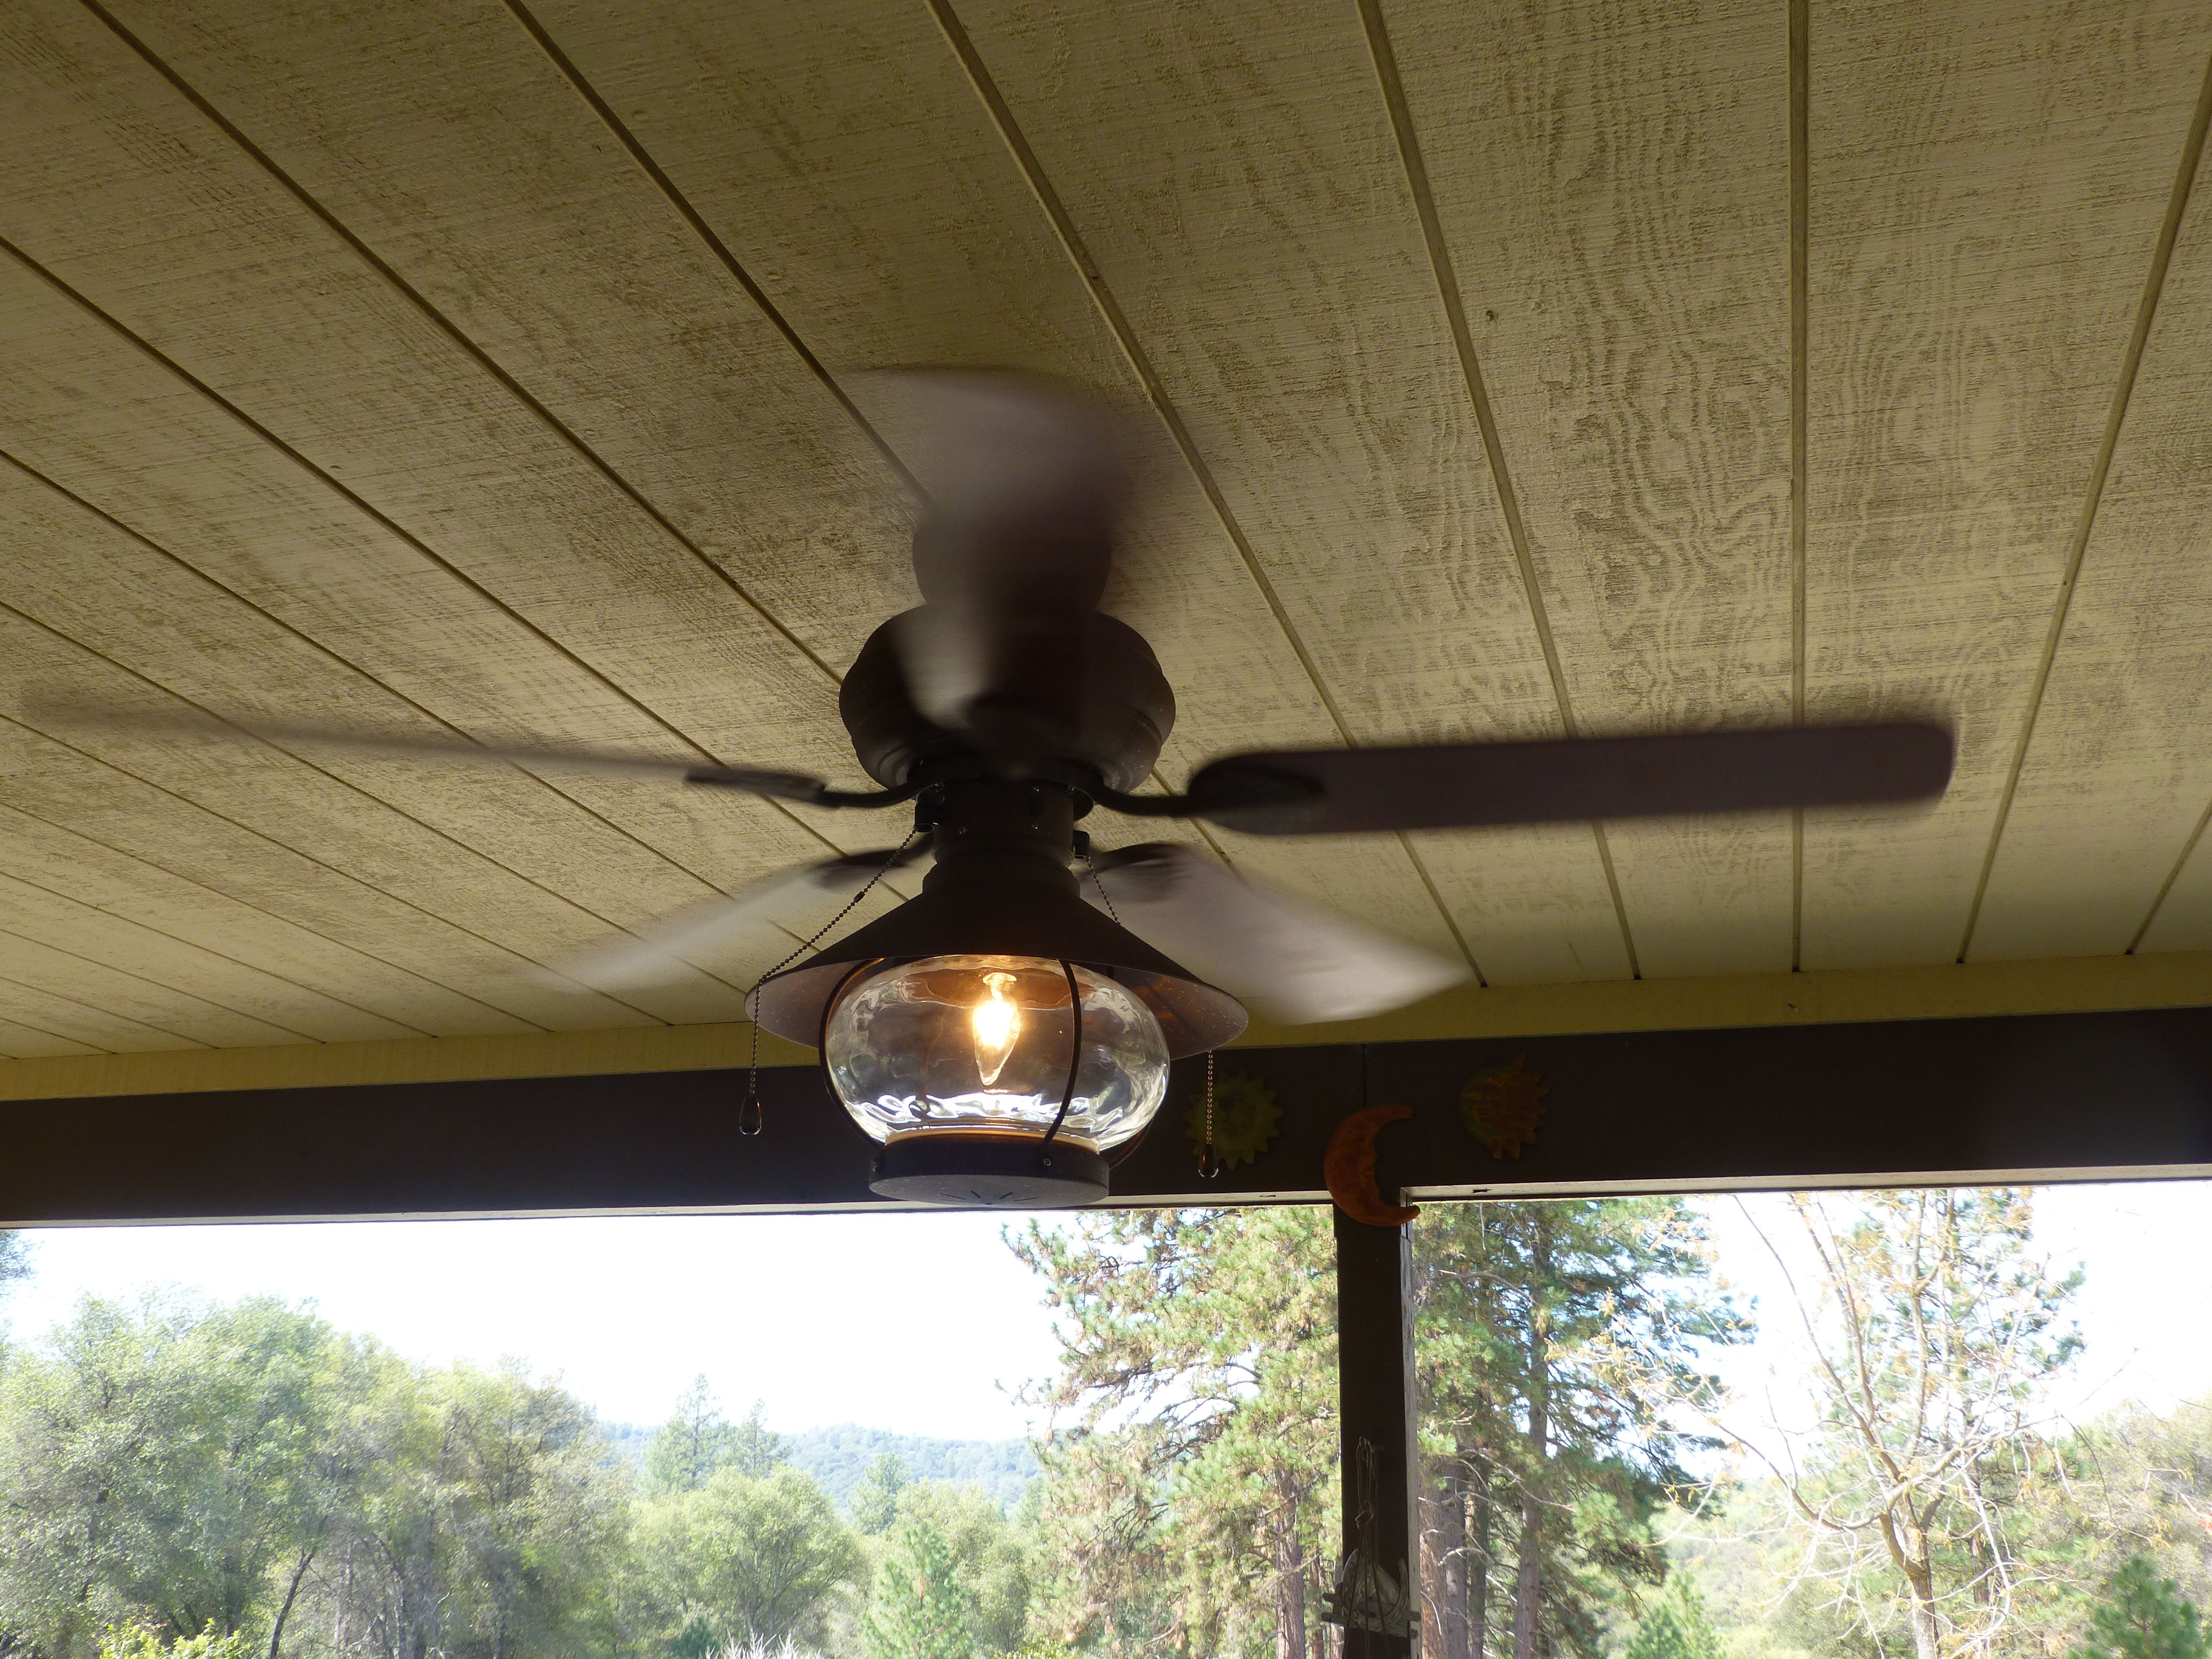 Day 25 The new outside porch ceiling fan lit and spinning